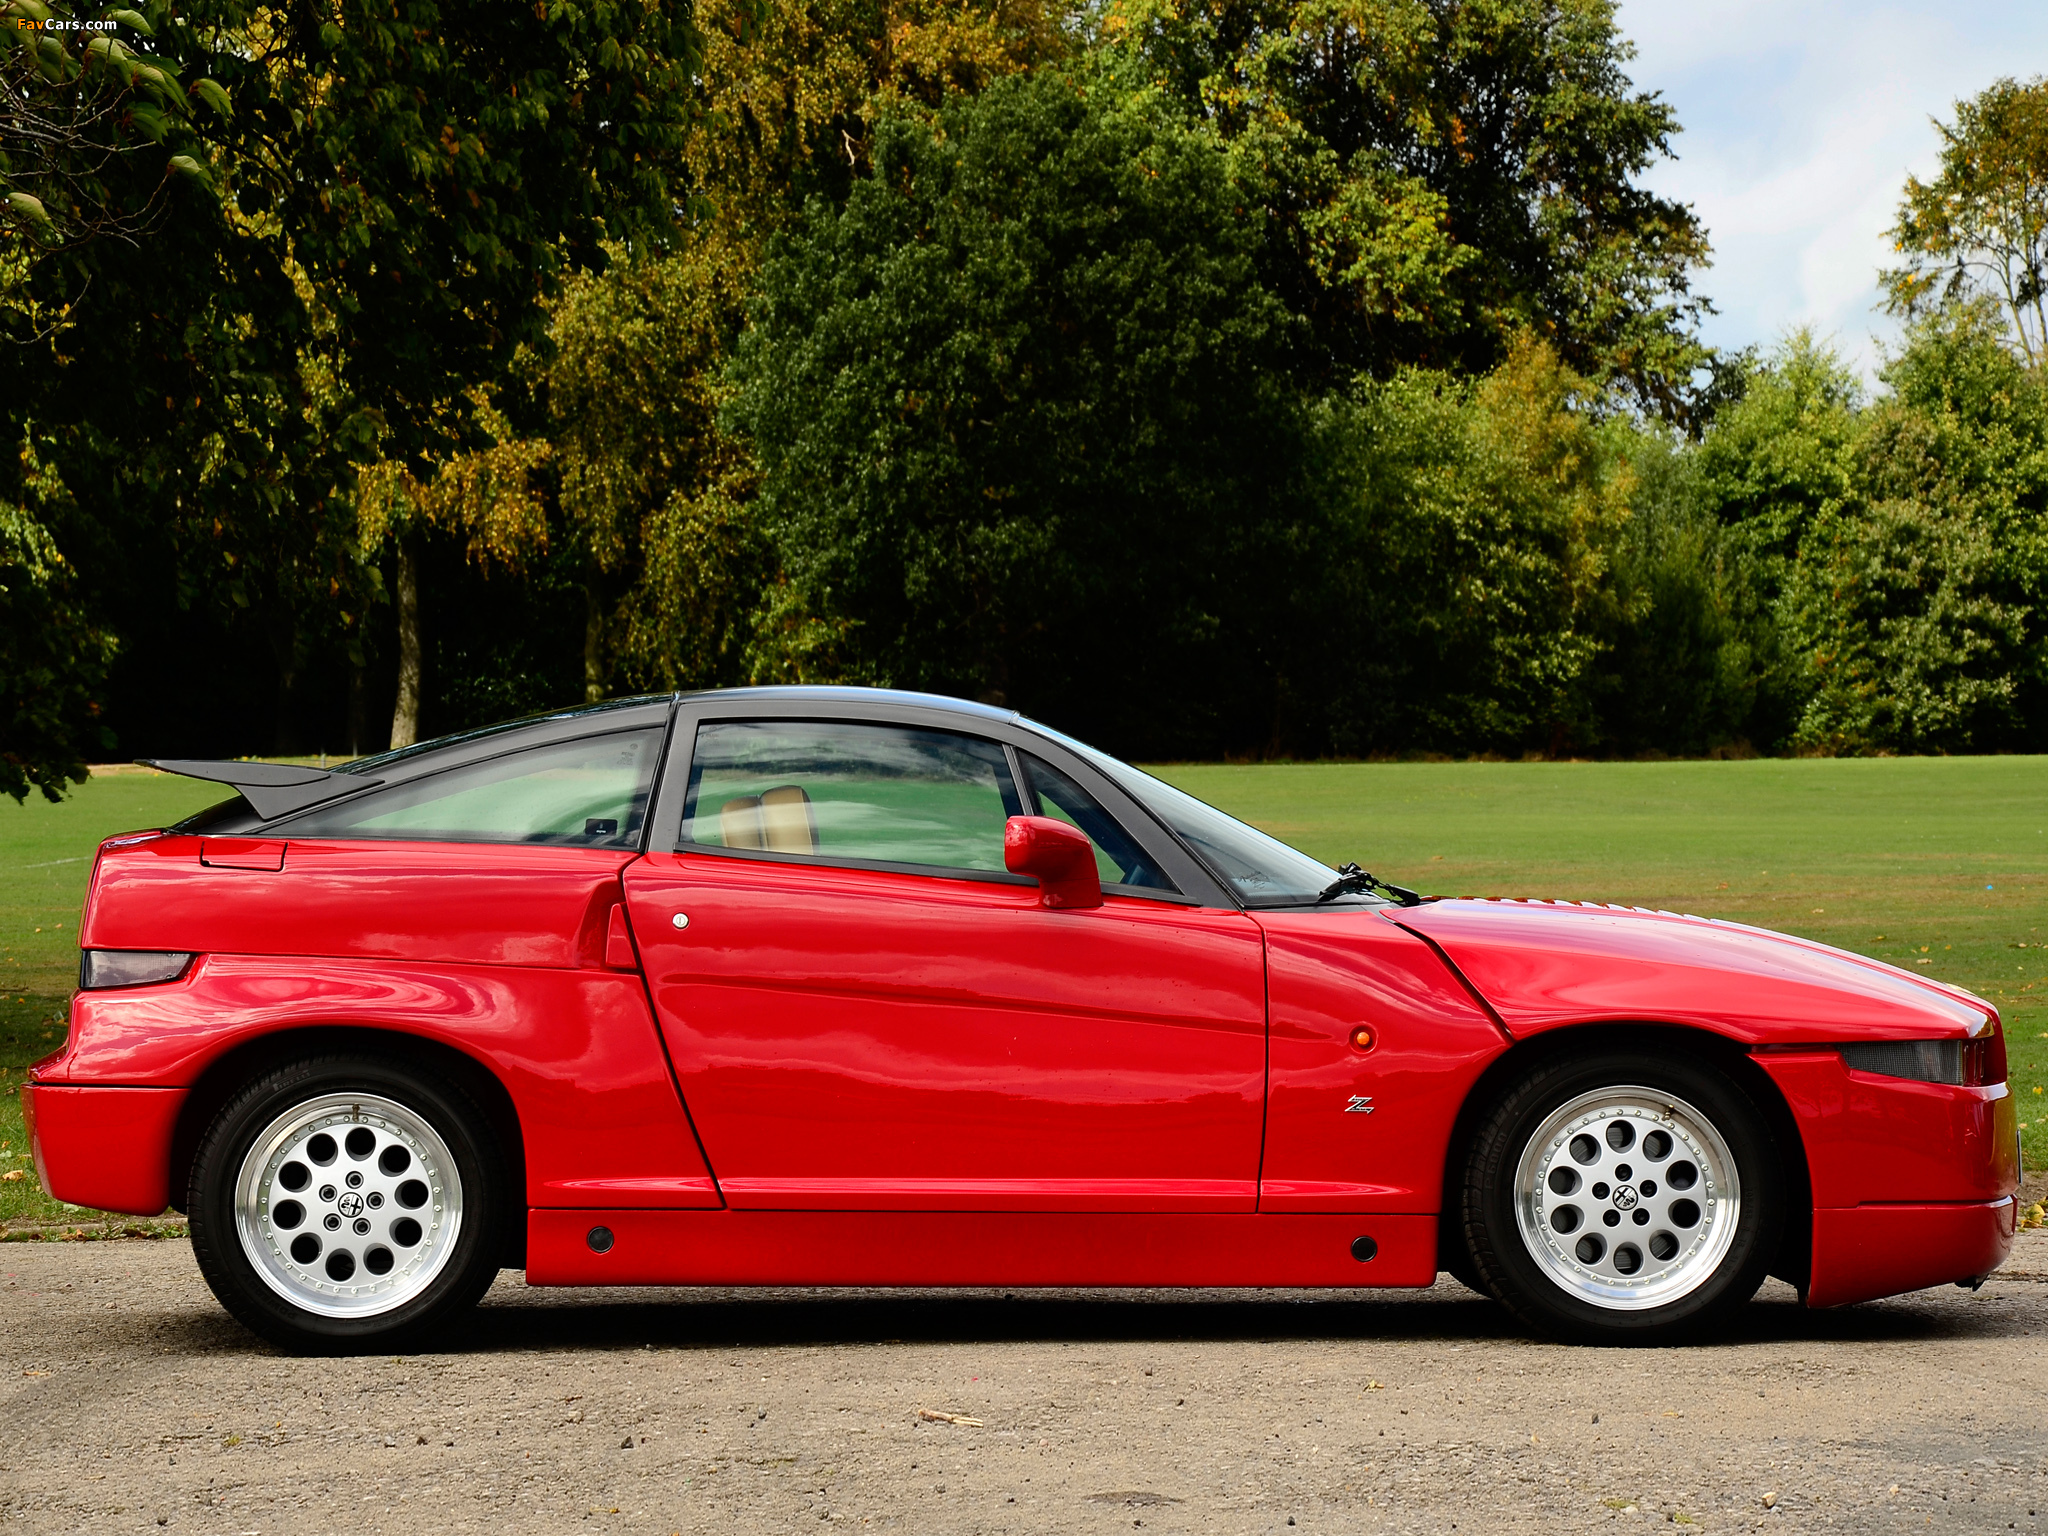 alfa_romeo_s-z-_r-z-_1989_photos_1 (1)